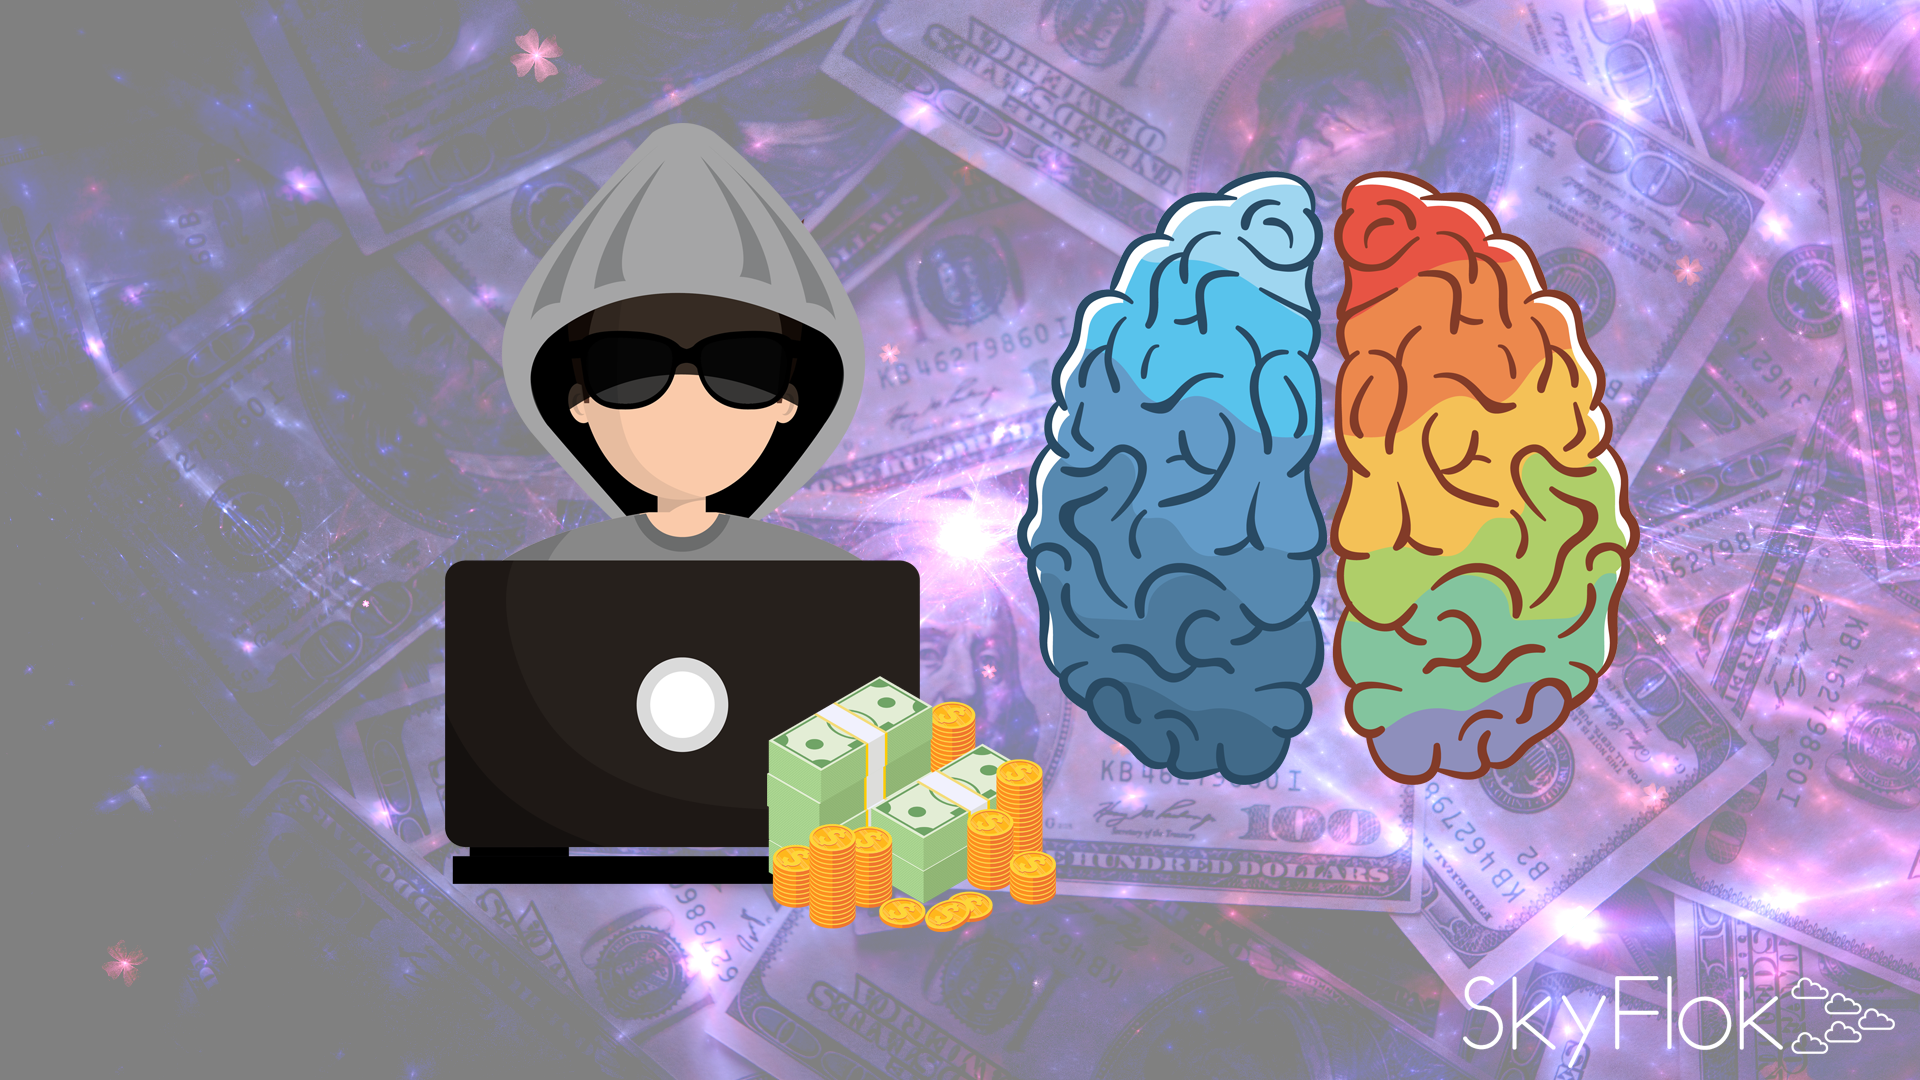 Associates in Psychiatry and Psychology Suffers Ransomware Attack